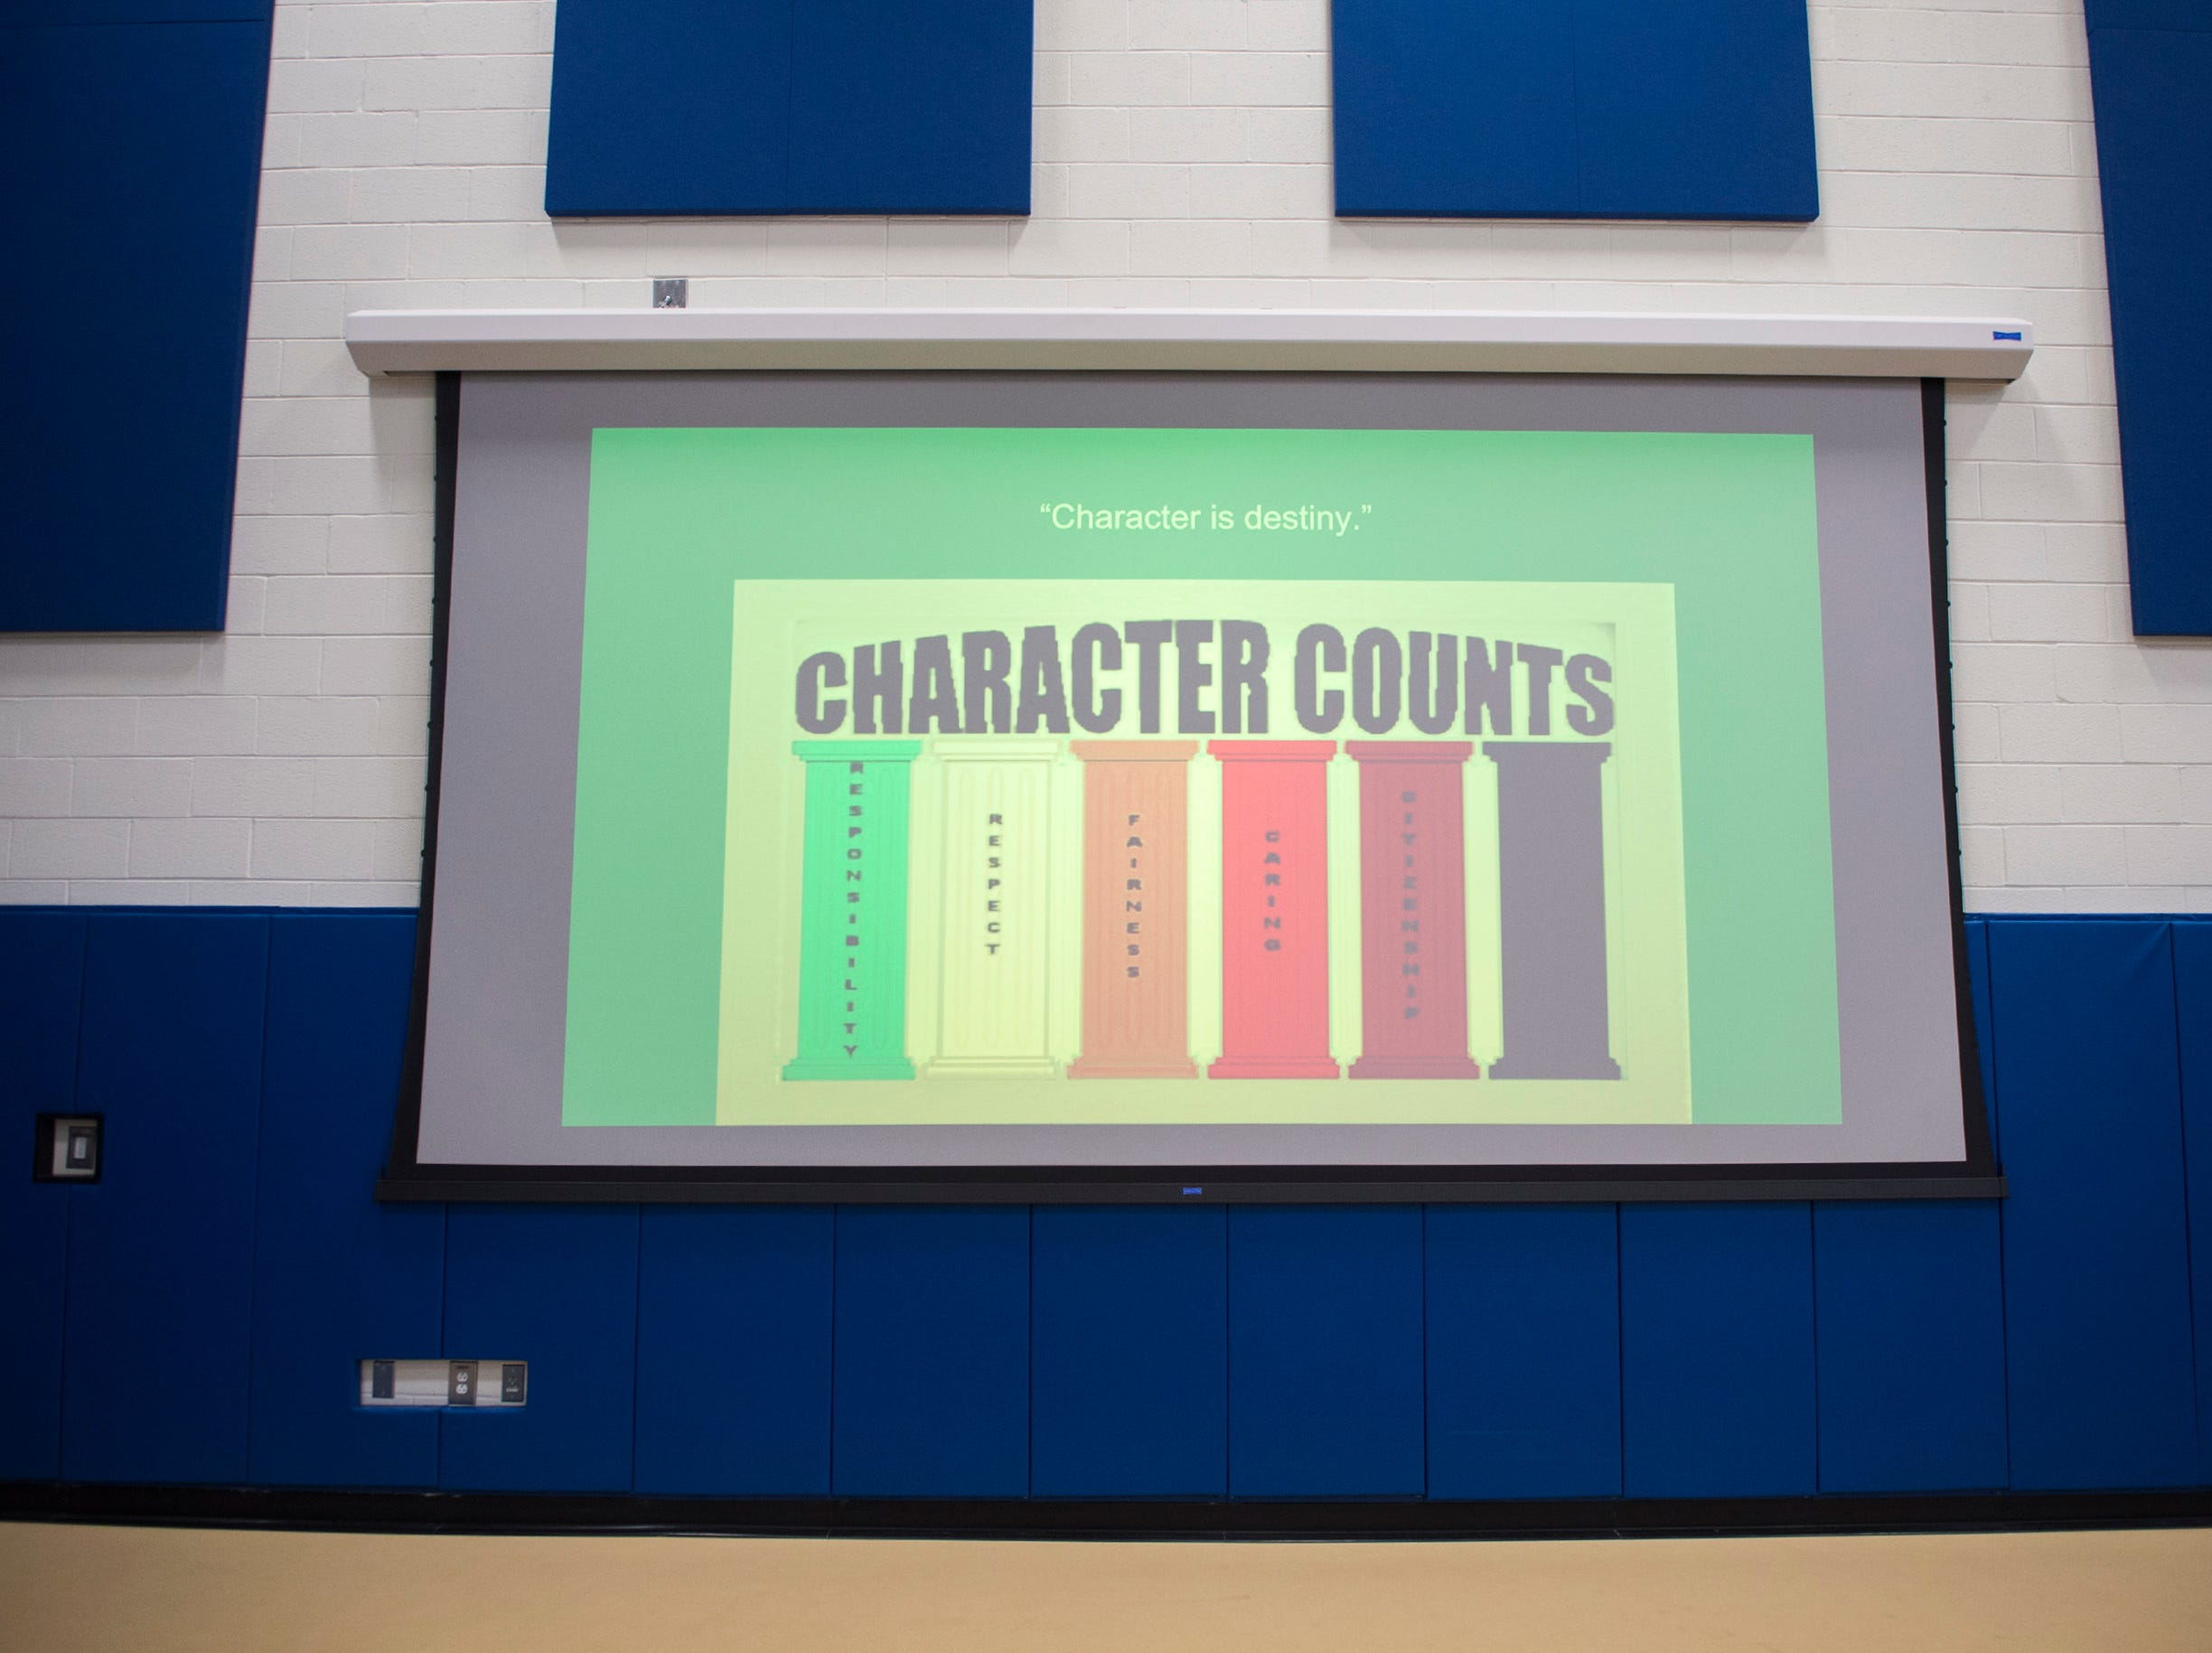 A slideshow presents the 'six pillars of character' Monday, Nov. 5, 2018 at Lincoln Avenue School in Vineland, N.J.